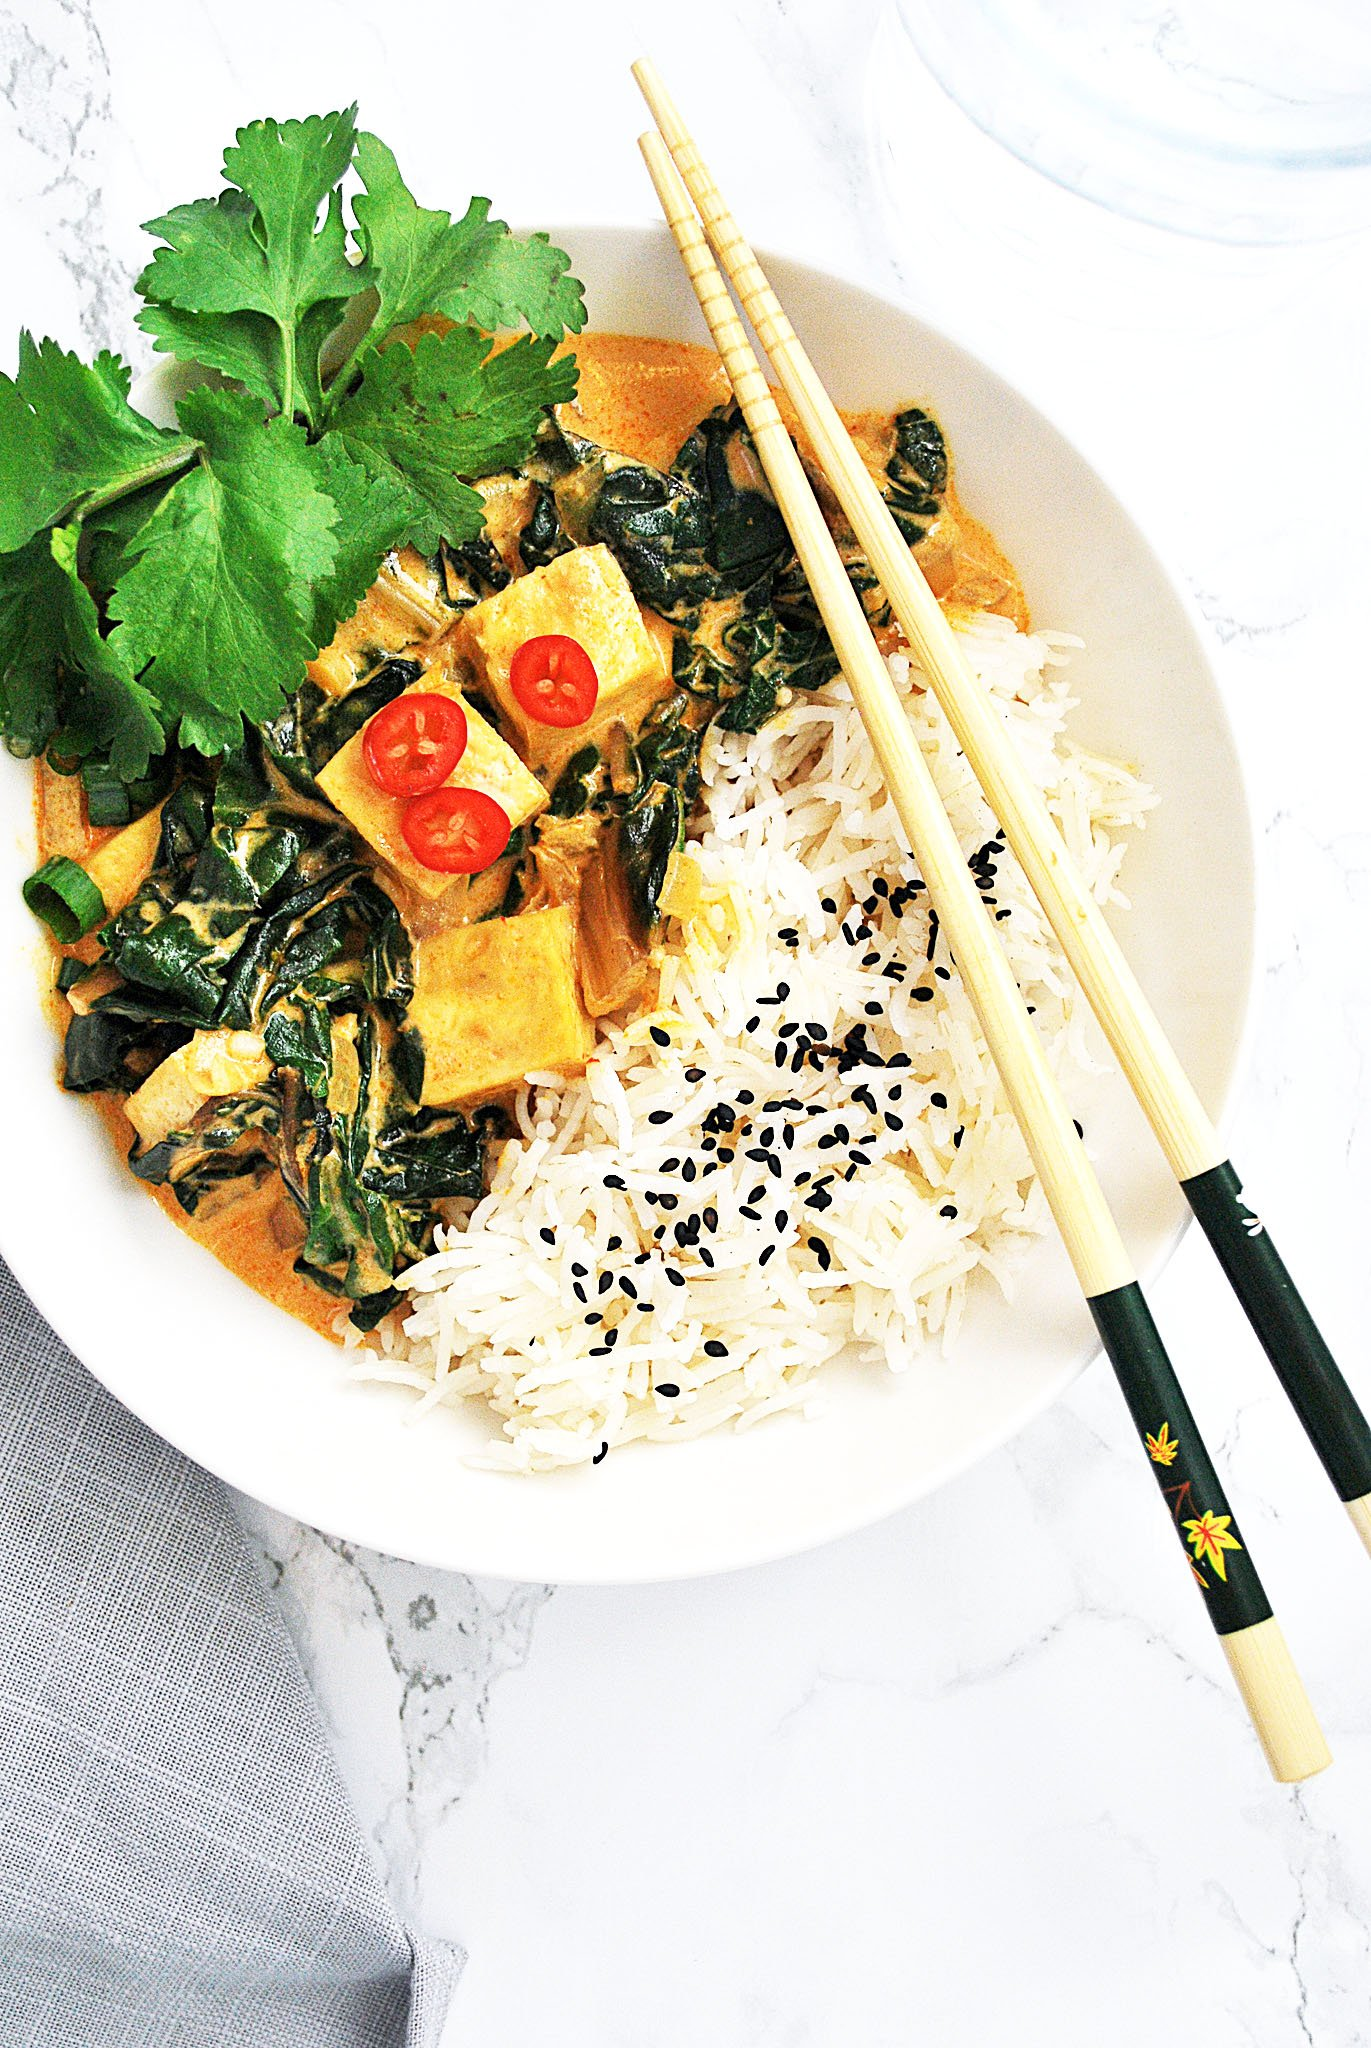 Thai Red curry tofu with Swiss chard and rice in a bowl with chopsticks.